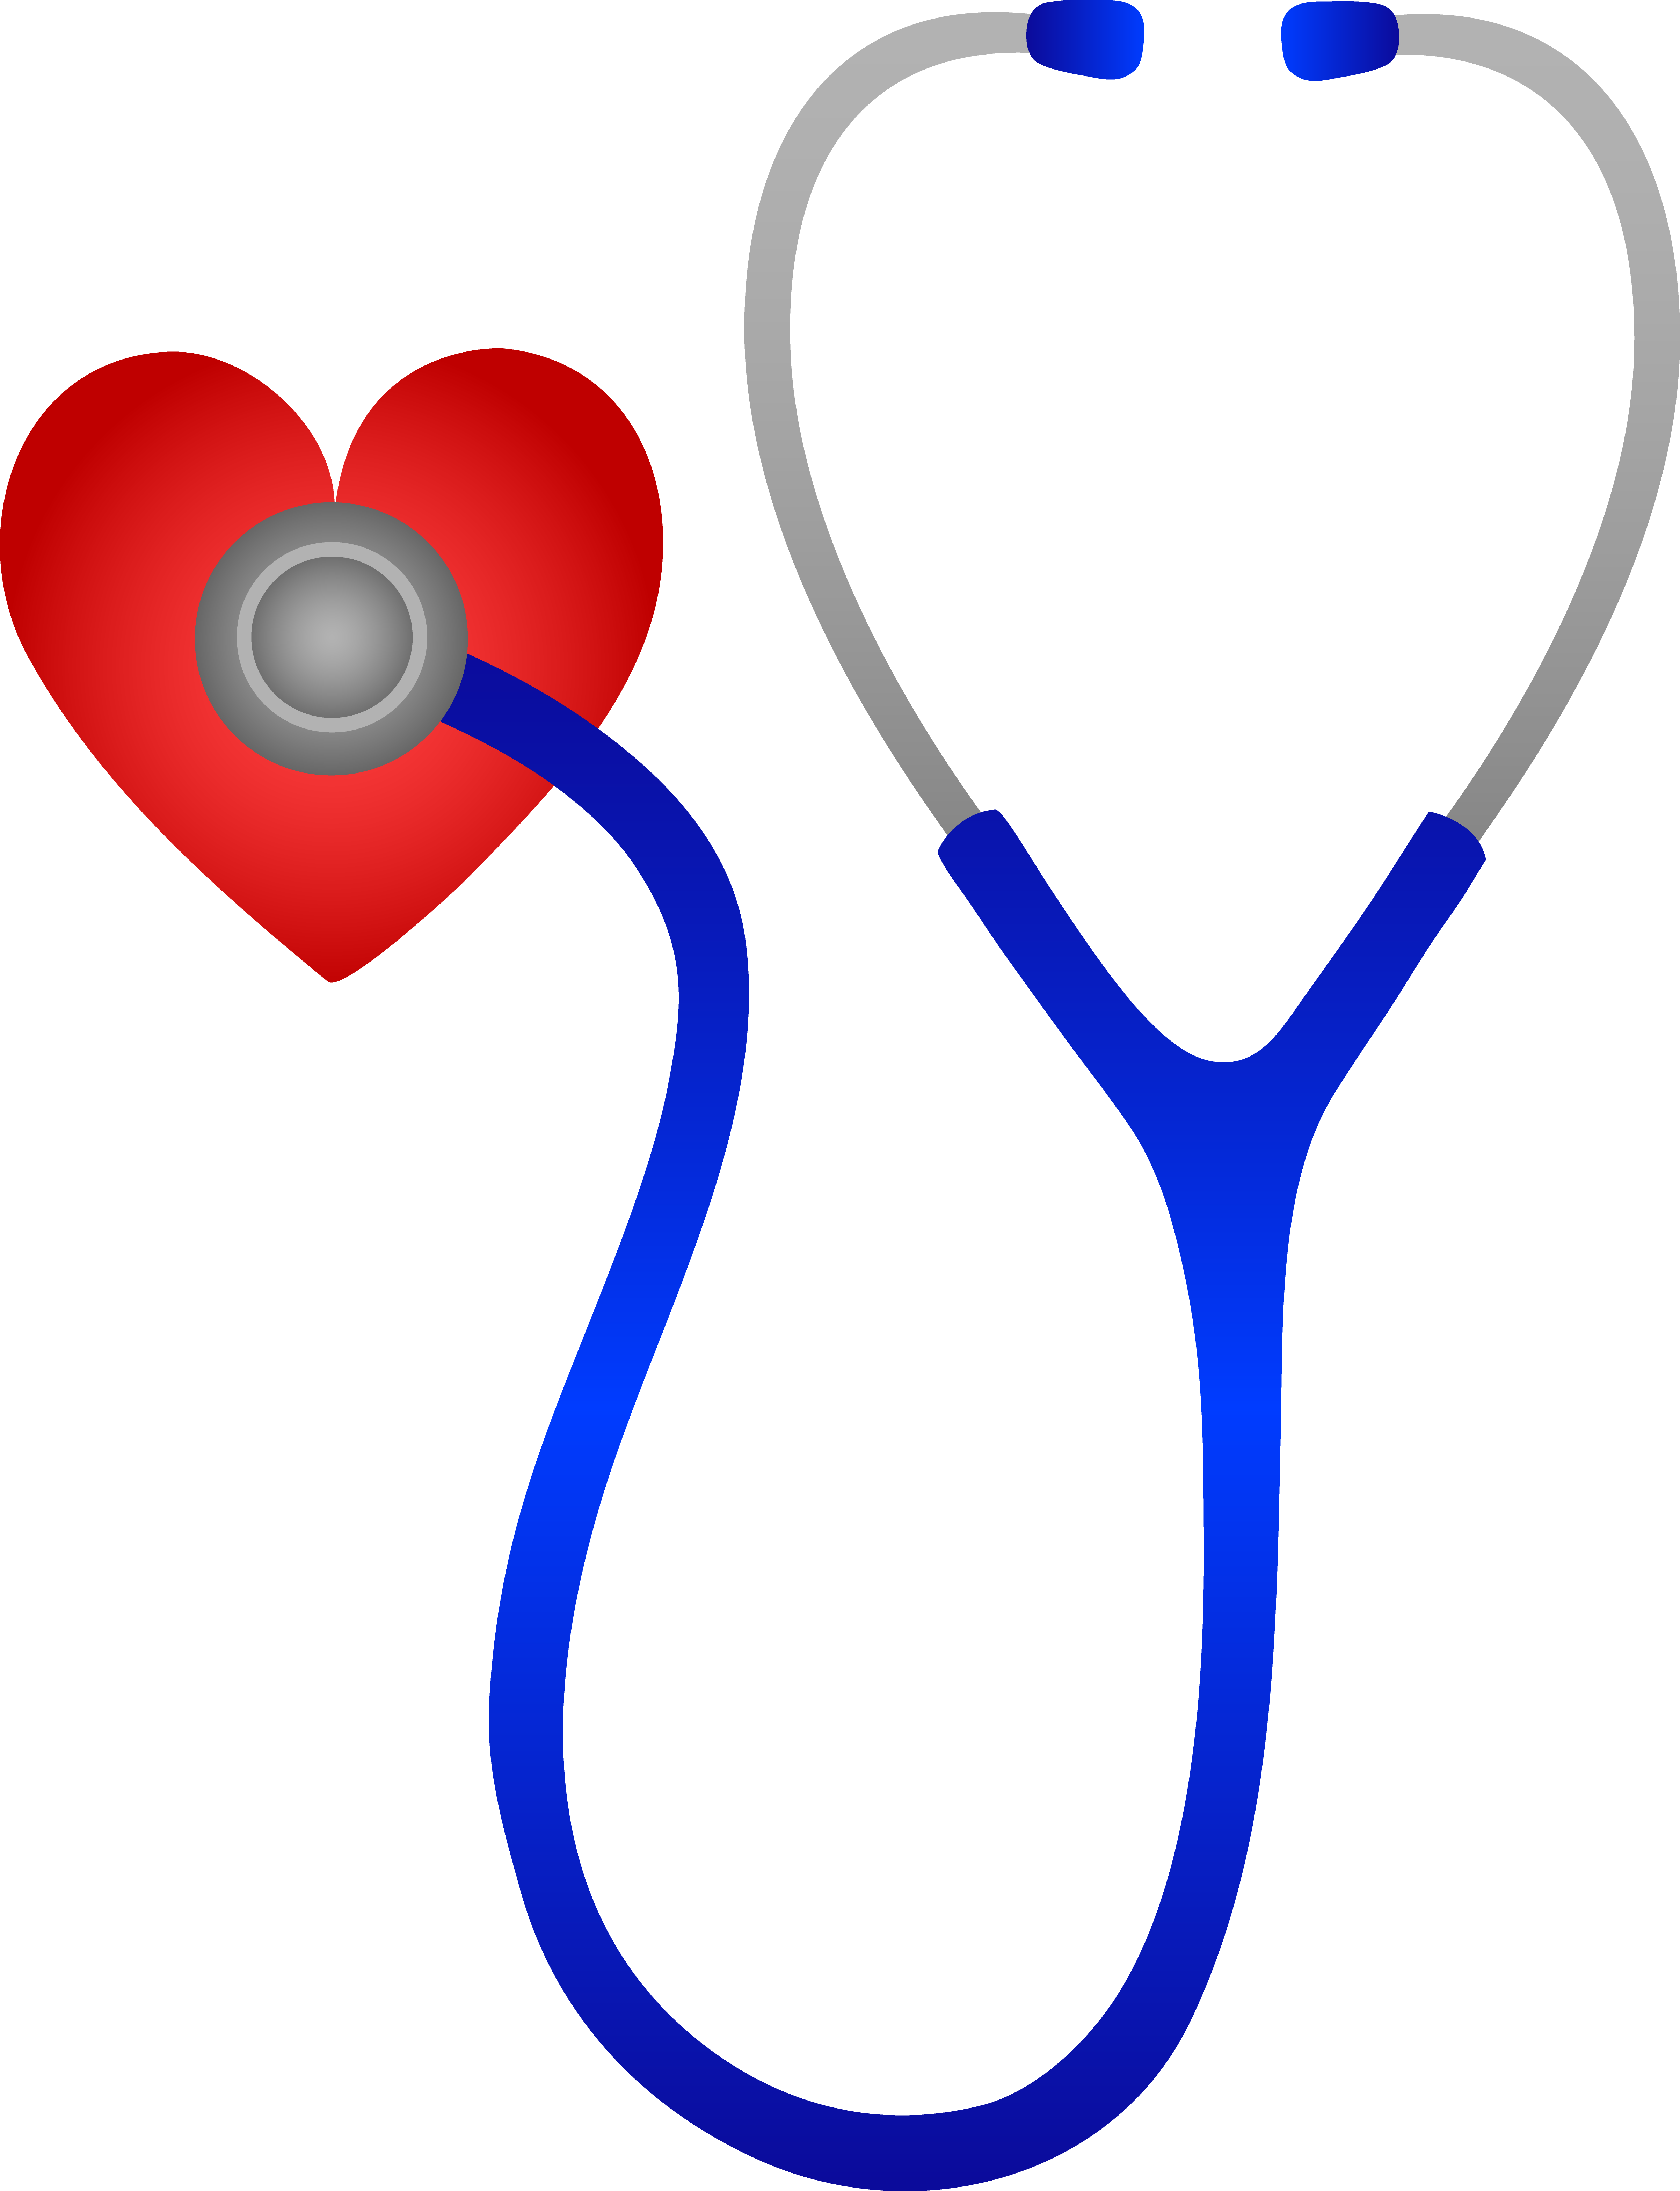 Watch clip stethoscope. Blue and red heart